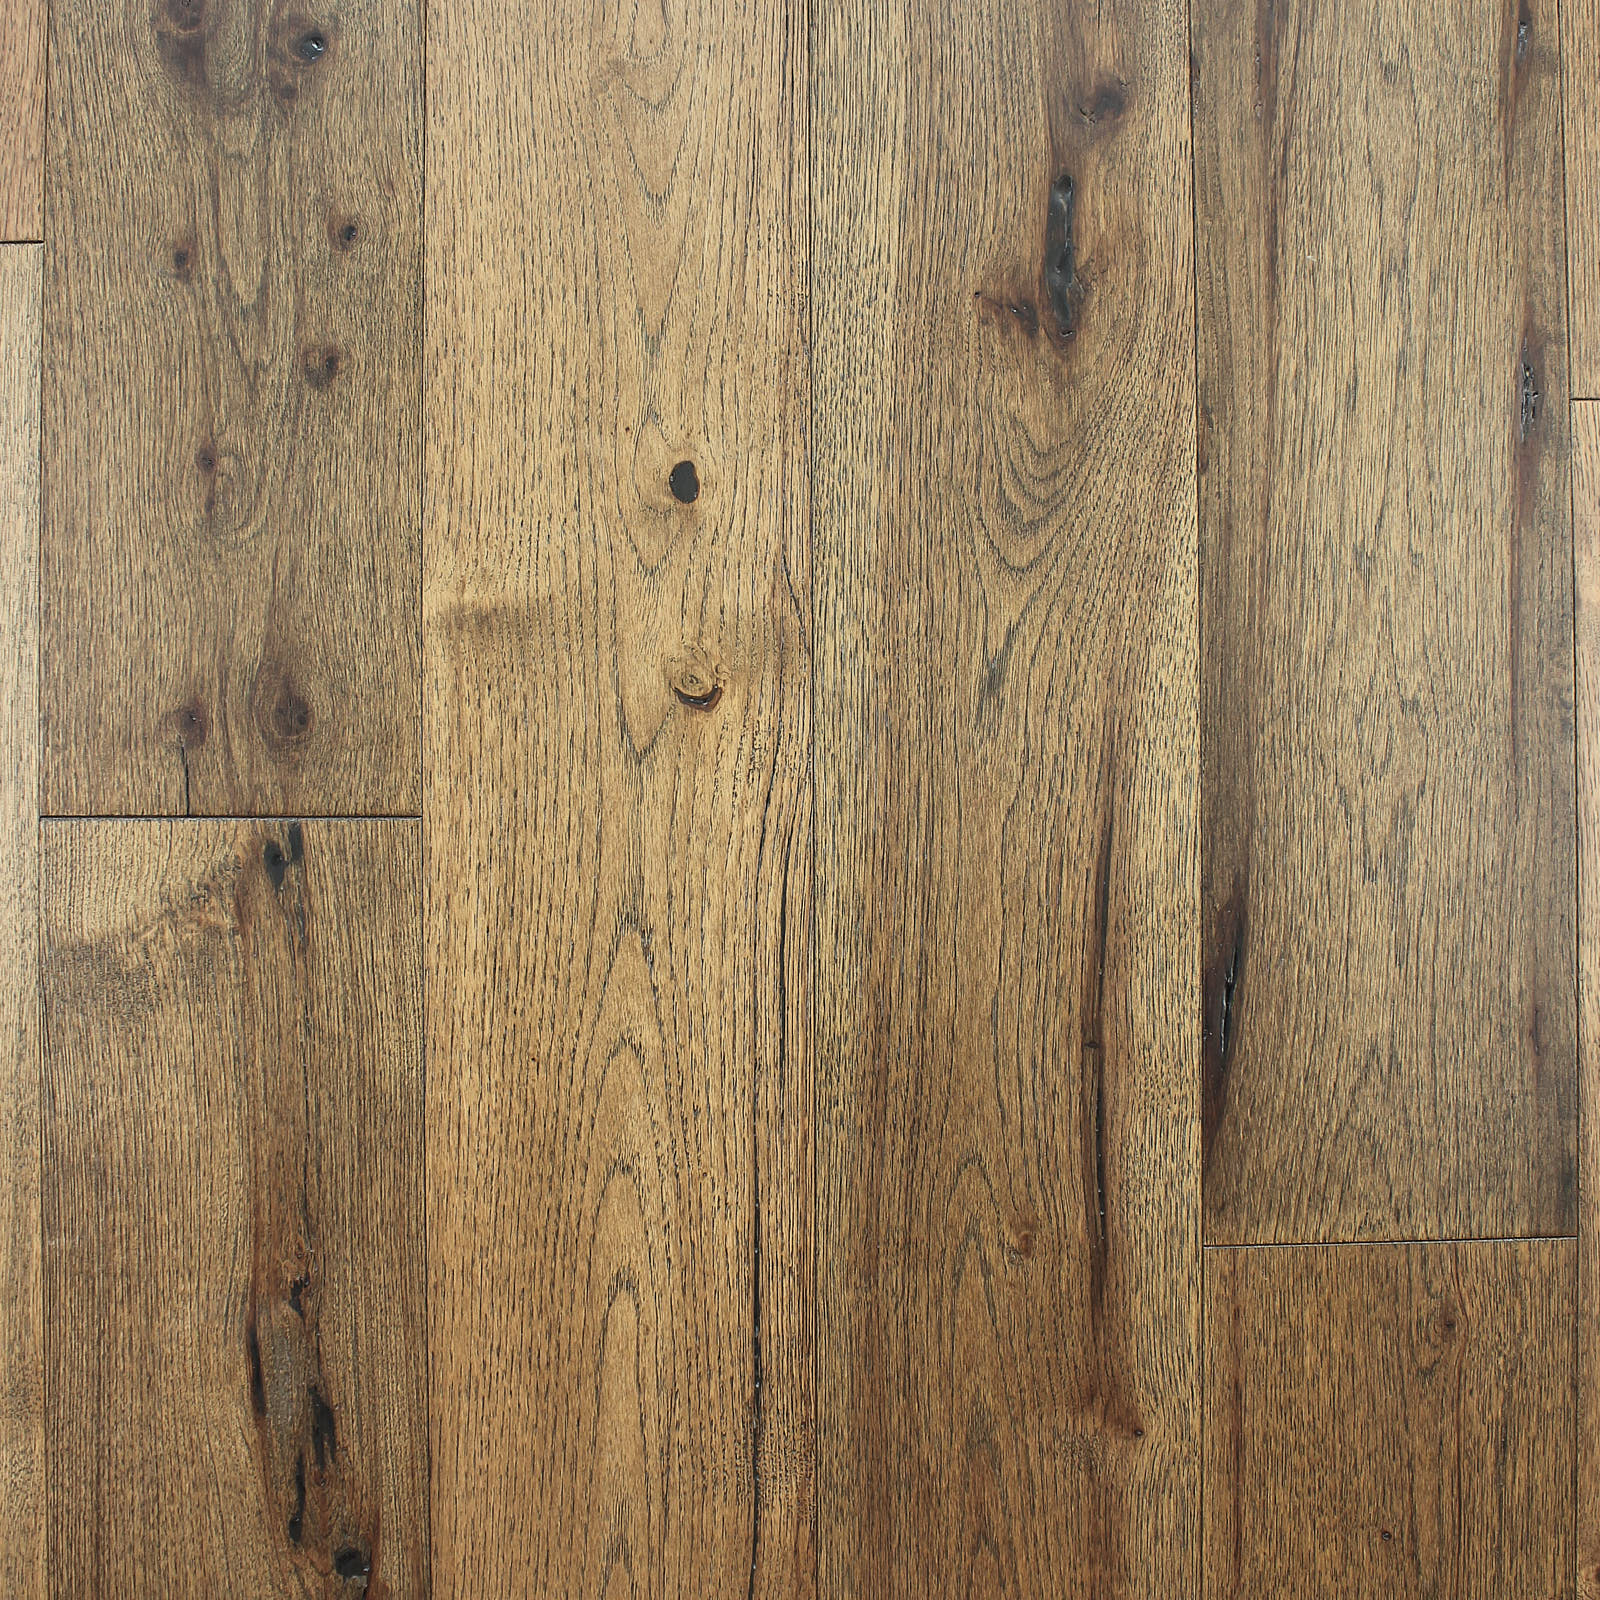 Twin Bridges Beaverhead Engineered Hardwood Flooring